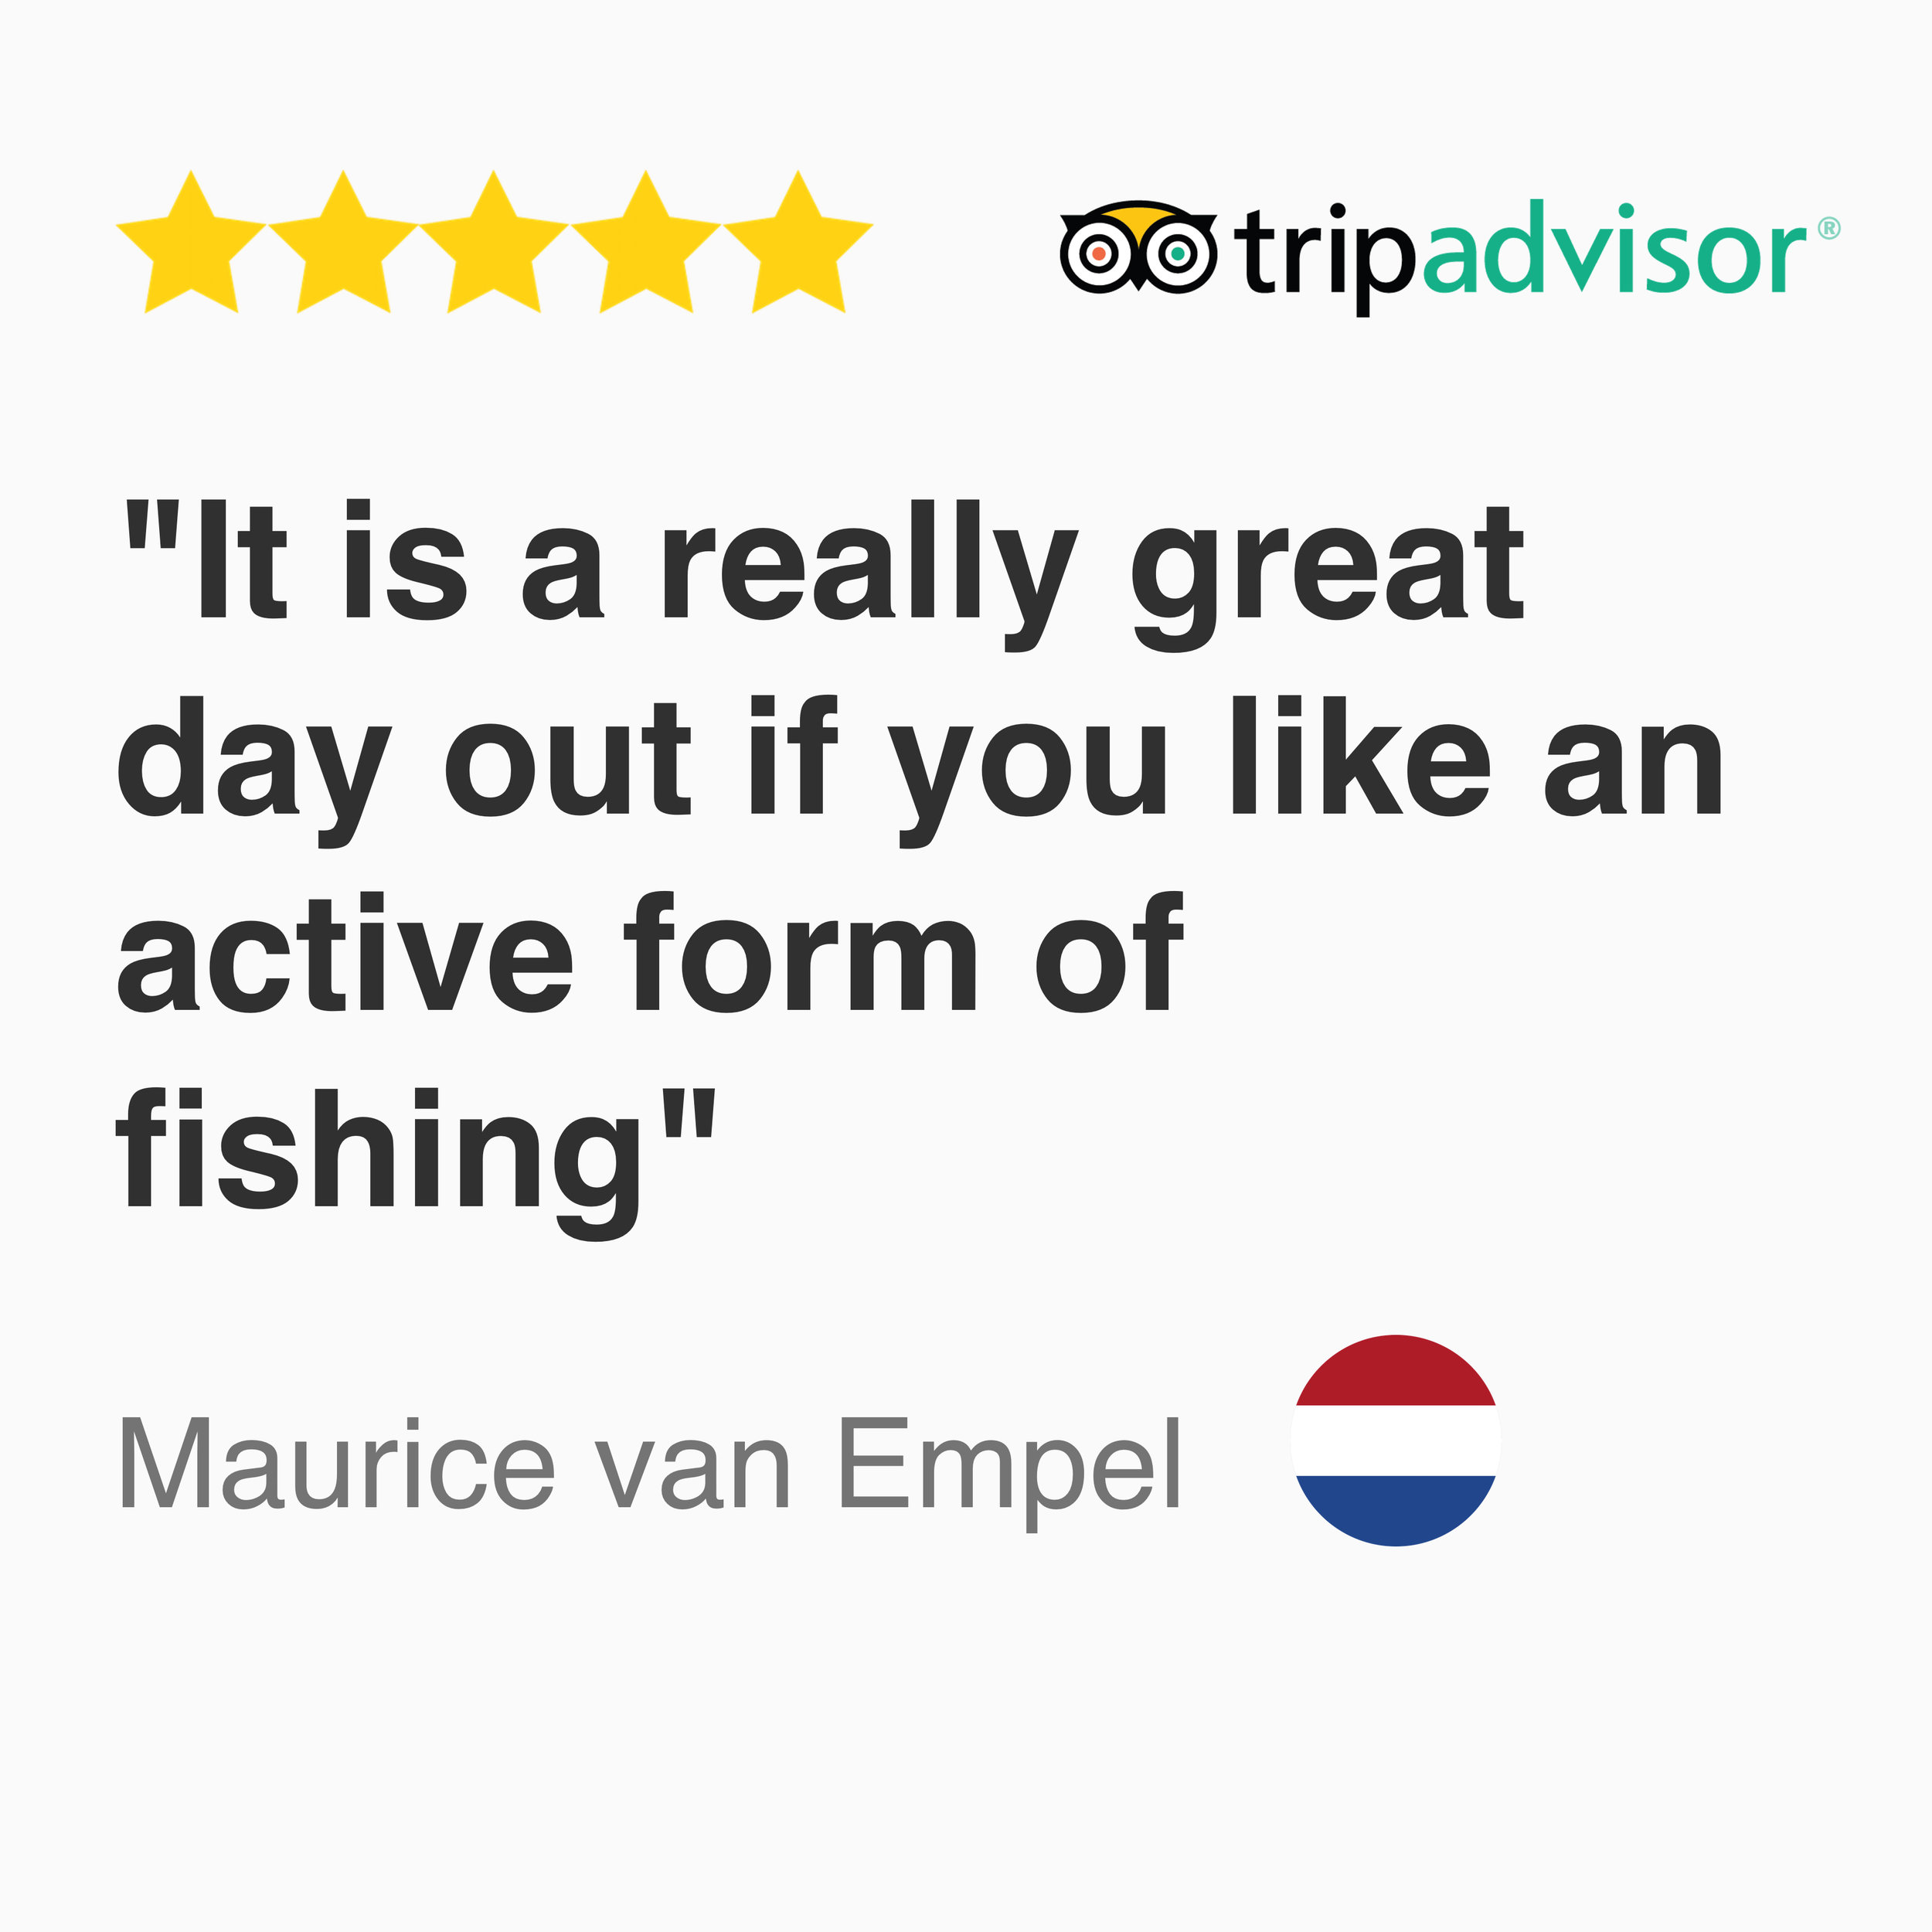 5 Star Trip advisor review for Kayak Fishing fever Singapore tour